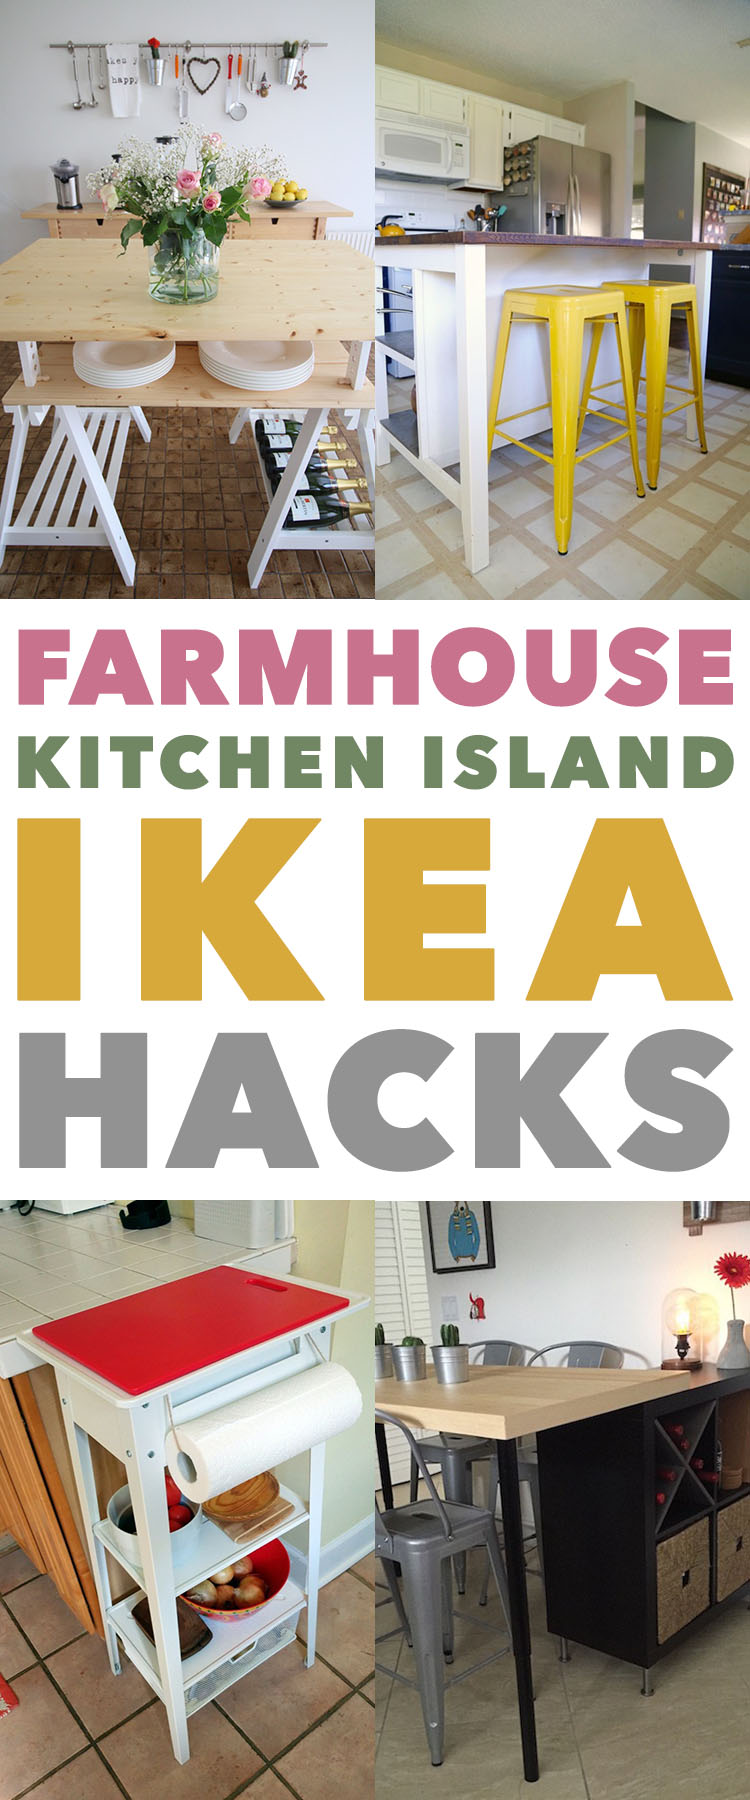 Farmhouse Kitchen Island IKEA Hacks